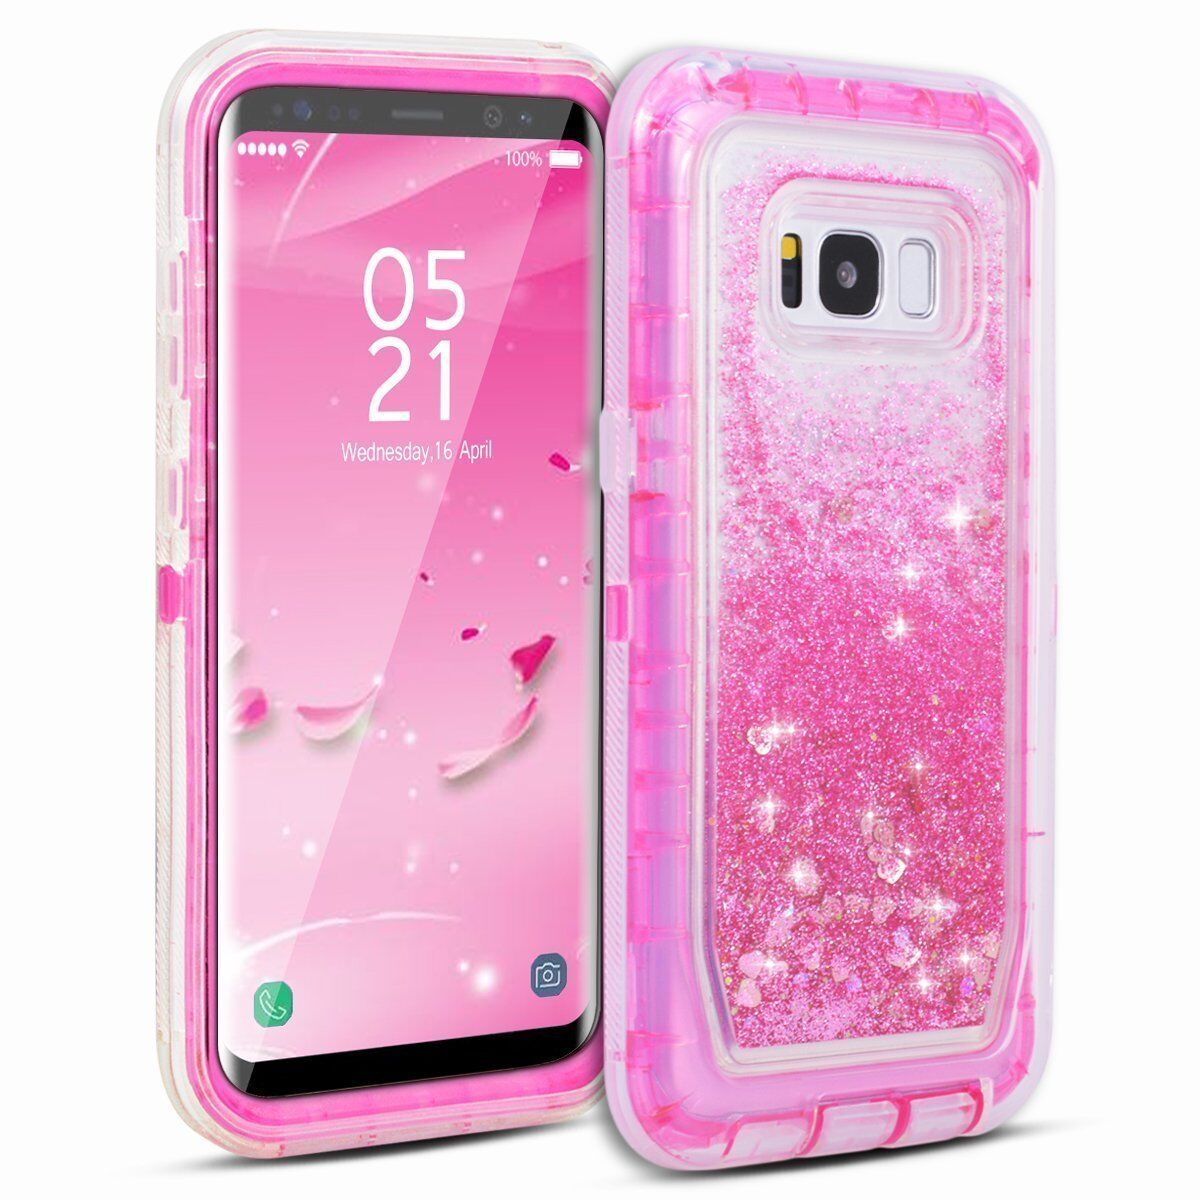 Galaxy Note S 9 8 7 Plus Edge Liquid Glitter Defender Case Clip Fits Otterbox